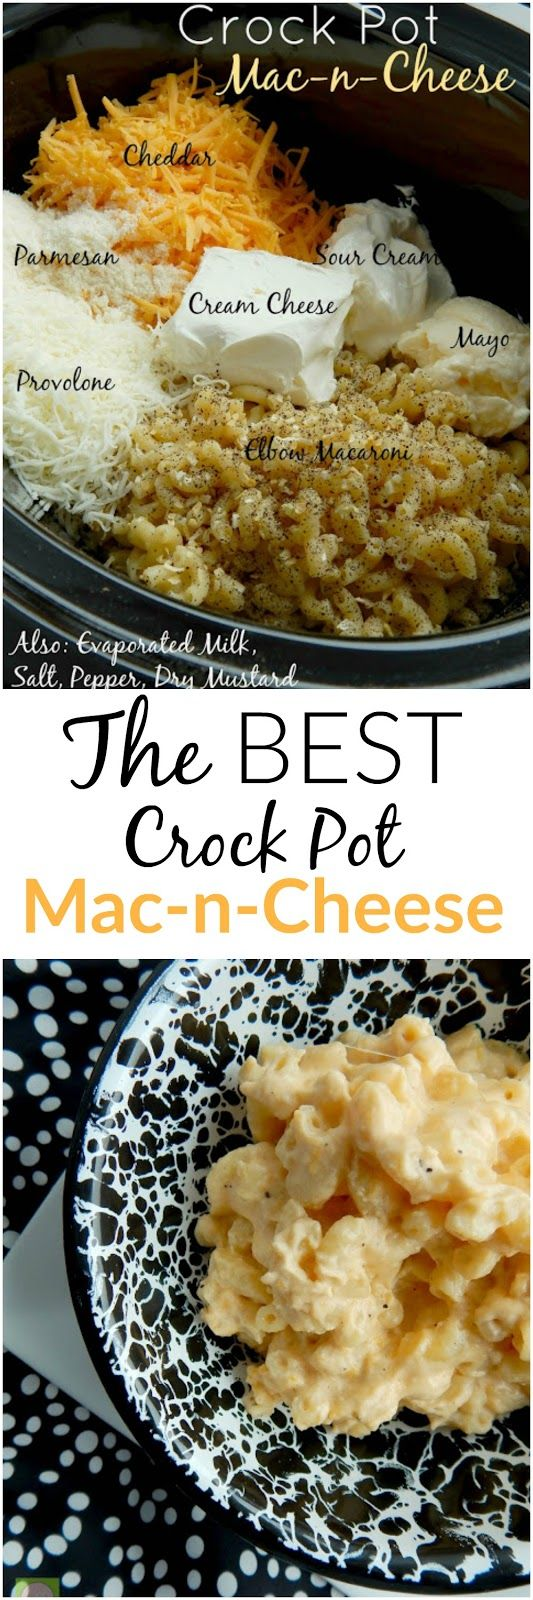 Crock Pot Mac-n-Cheese #Crock #Pot #Mac #Cheese  #HEALTHYFOOD #EASYRECIPES #DINNER #LAUCH #DELICIOUS #EASY #HOLIDAYS #RECIPE #DESSERTS #SPECIALDIET #WORLDCUISINE #CAKE #APPETIZERS #HEALTHYRECIPES #DRINKS #COOKINGMETHOD #ITALIANRECIPES #MEAT #VEGANRECIPES #COOKIES #PASTA #FRUIT #SALAD #SOUPAPPETIZERS #NONALCOHOLICDRINKS #MEALPLANNING #VEGETABLES #SOUP #PASTRY #CHOCOLATE #DAIRY #ALCOHOLICDRINKS #BULGURSALAD #BAKING #SNACKS #BEEFRECIPES #MEATAPPETIZERS #MEXICANRECIPES #BREAD #ASIANRECIPES #SEAFOODAPPETIZERS #MUFFINS #BREAKFASTANDBRUNCH #CONDIMENTS #CUPCAKES #CHEESE #CHICKENRECIPES #PIE #COFFEE #NOBAKEDESSERTS #HEALTHYSNACKS #SEAFOOD #GRAIN #LUNCHESDINNERS #MEXICAN #QUICKBREAD #LIQUOR